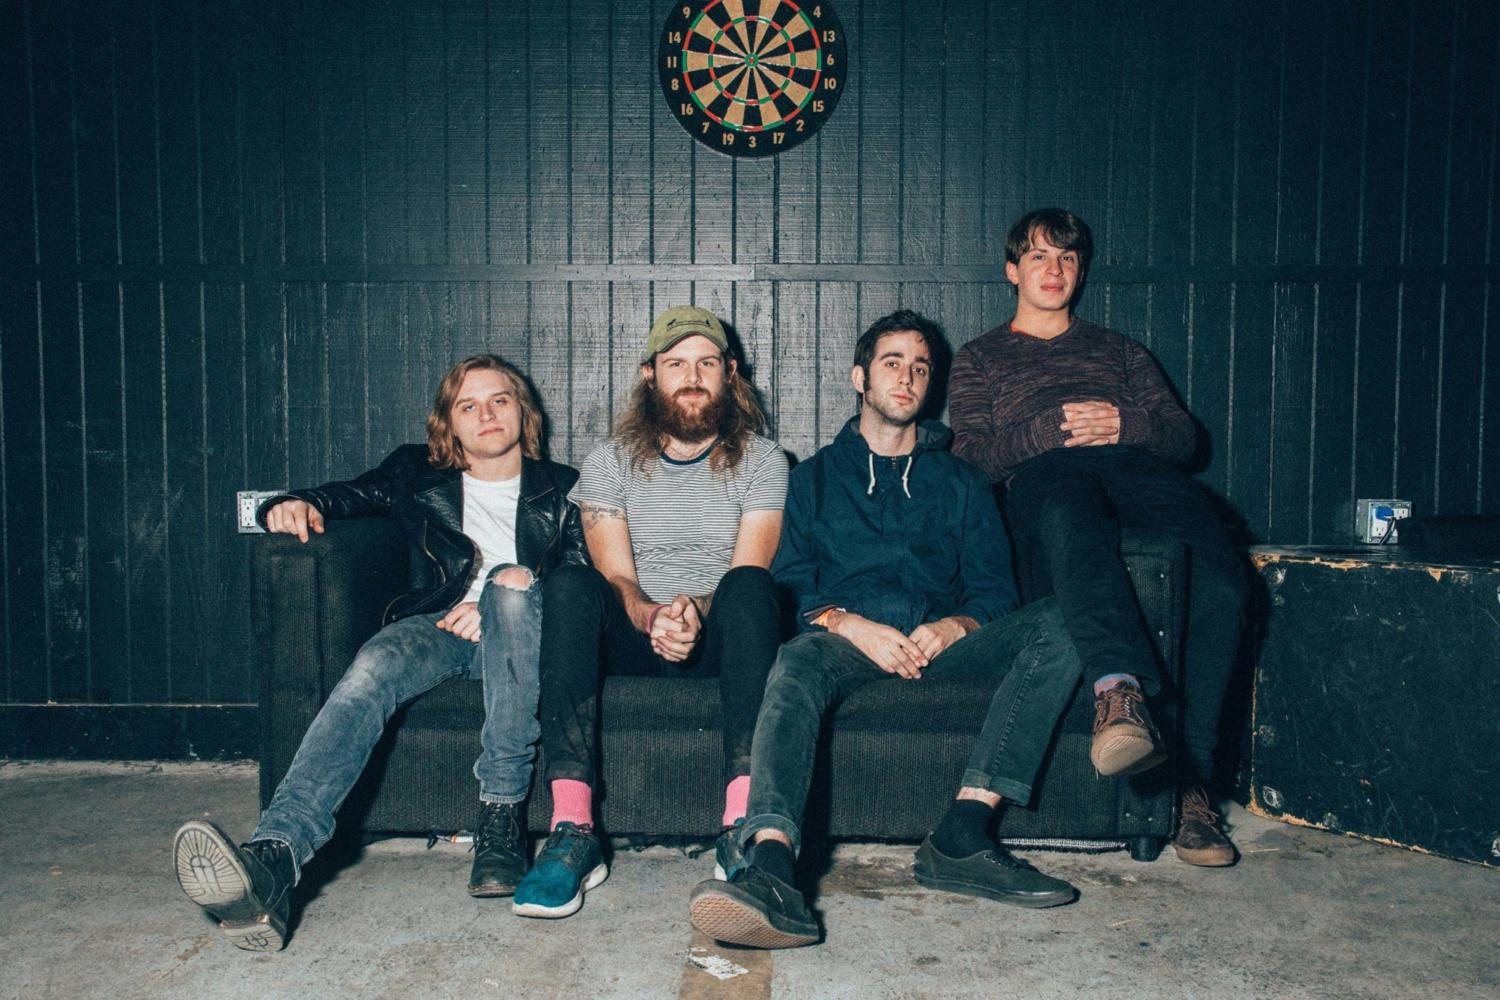 Filling in the blanks: Sorority Noise